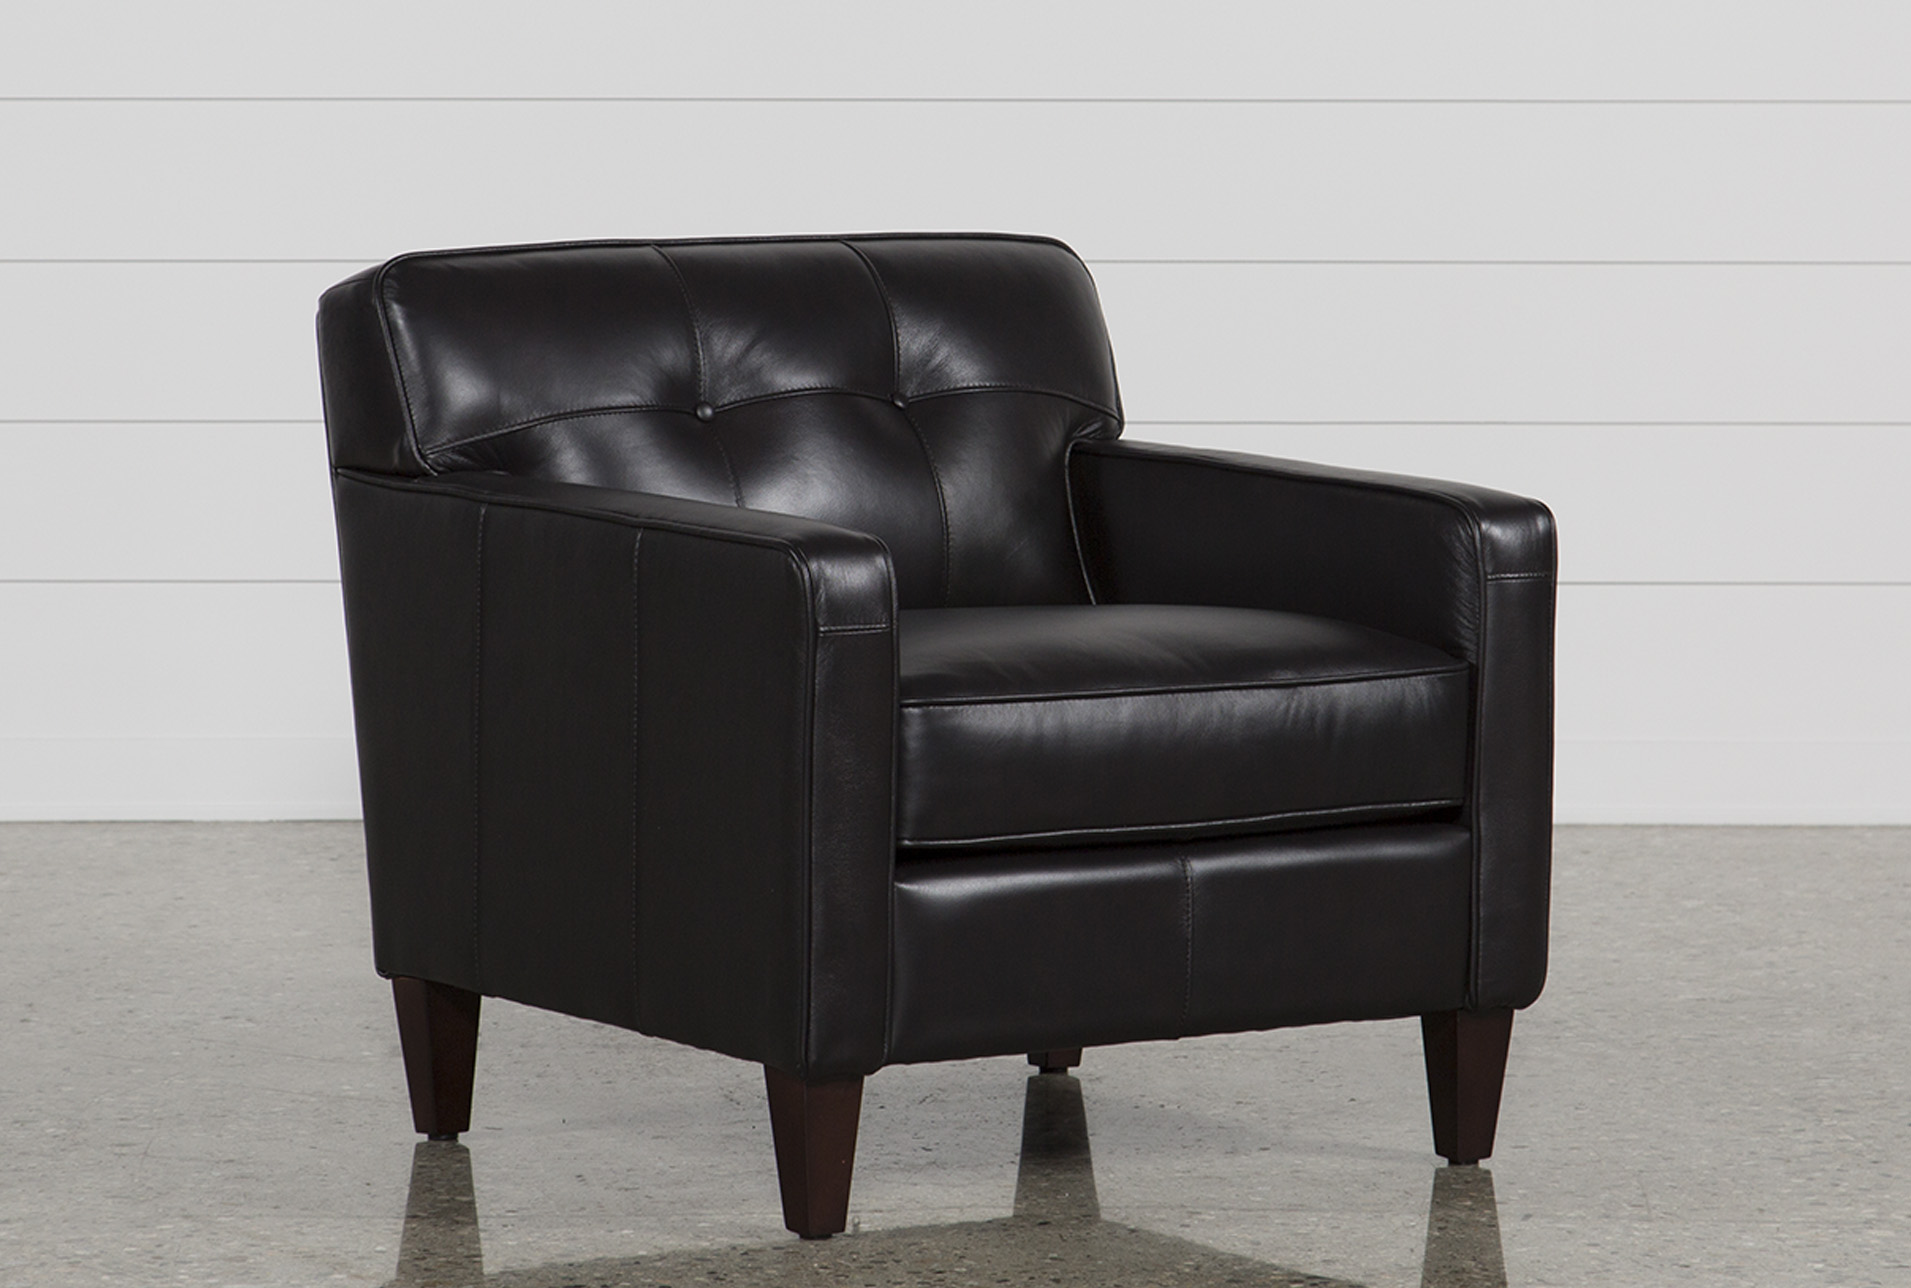 Etonnant Madison Espresso Leather Chair (Qty: 1) Has Been Successfully Added To Your  Cart.